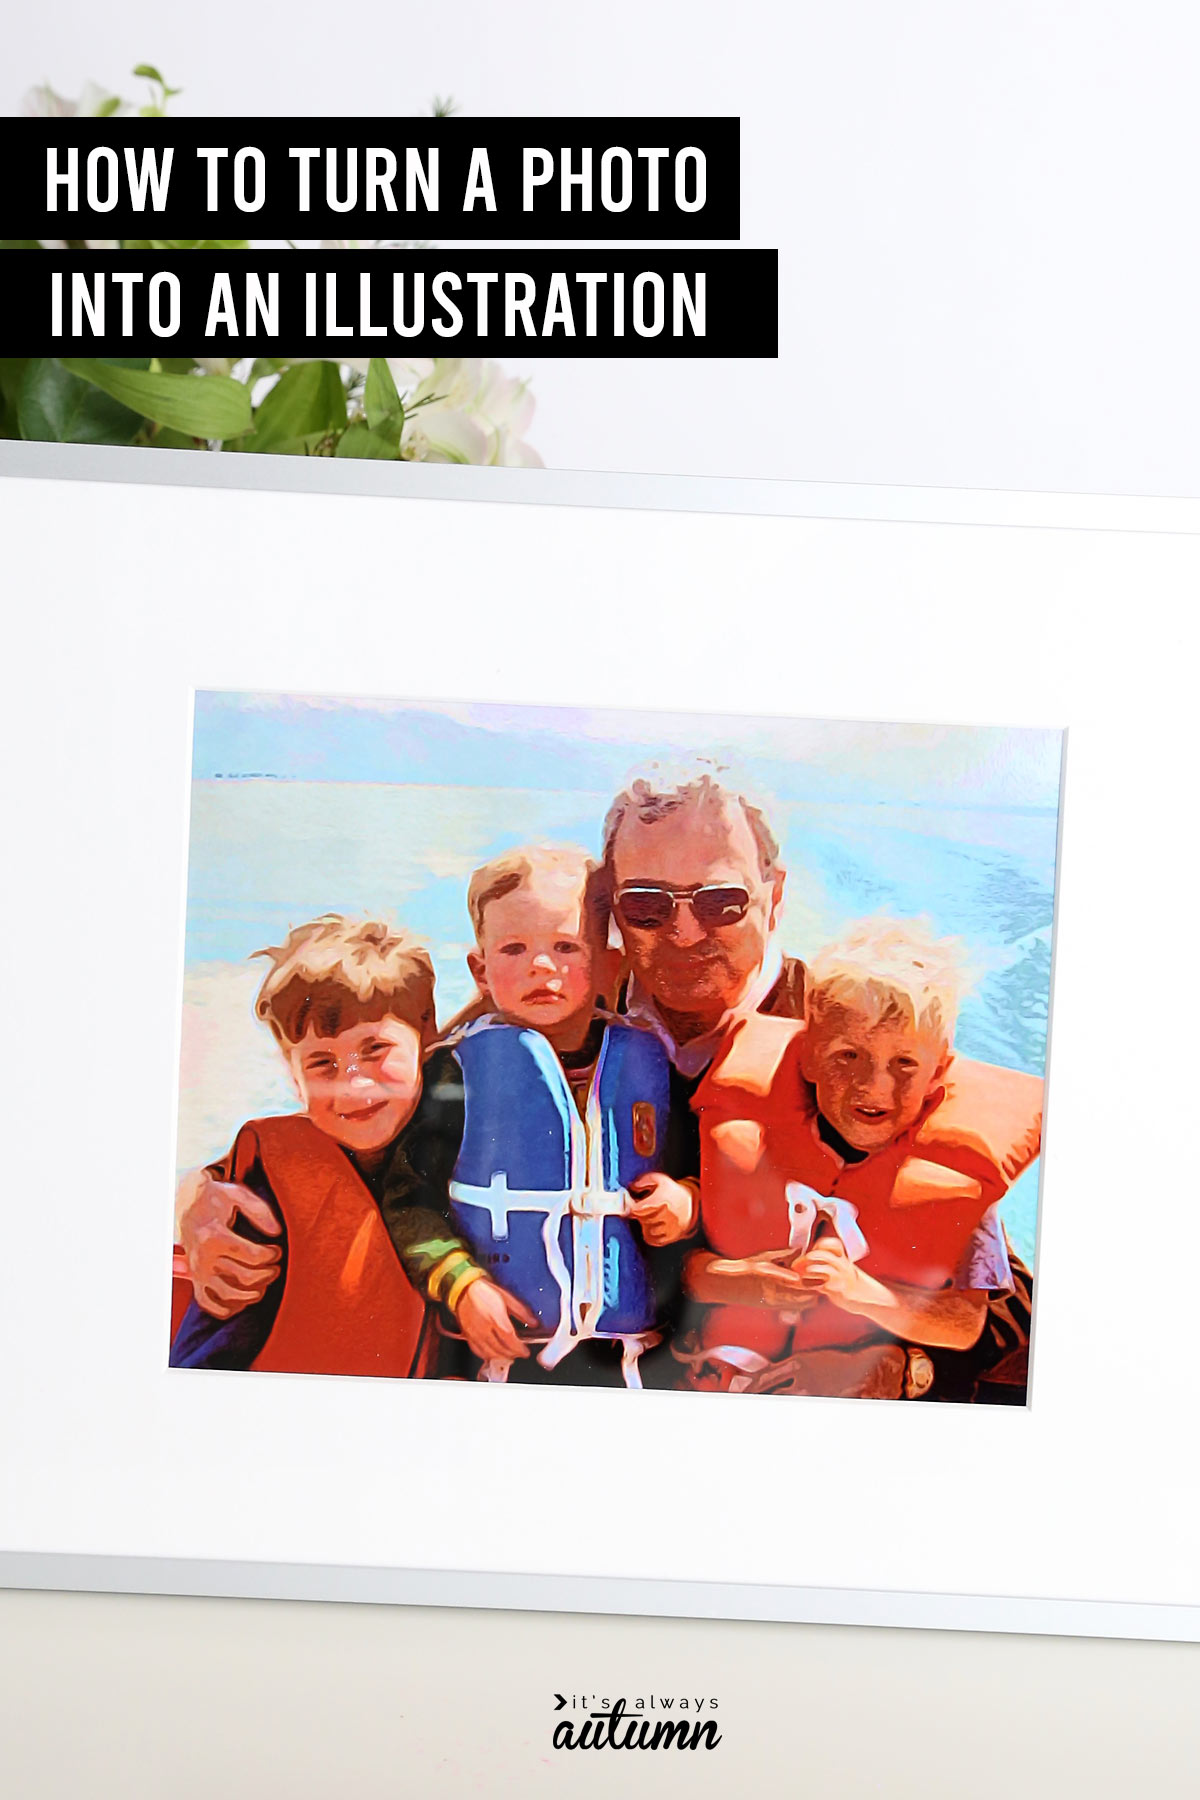 Illustrated photo of grandpa and three little boys with text: How to turn a photo into an illustration